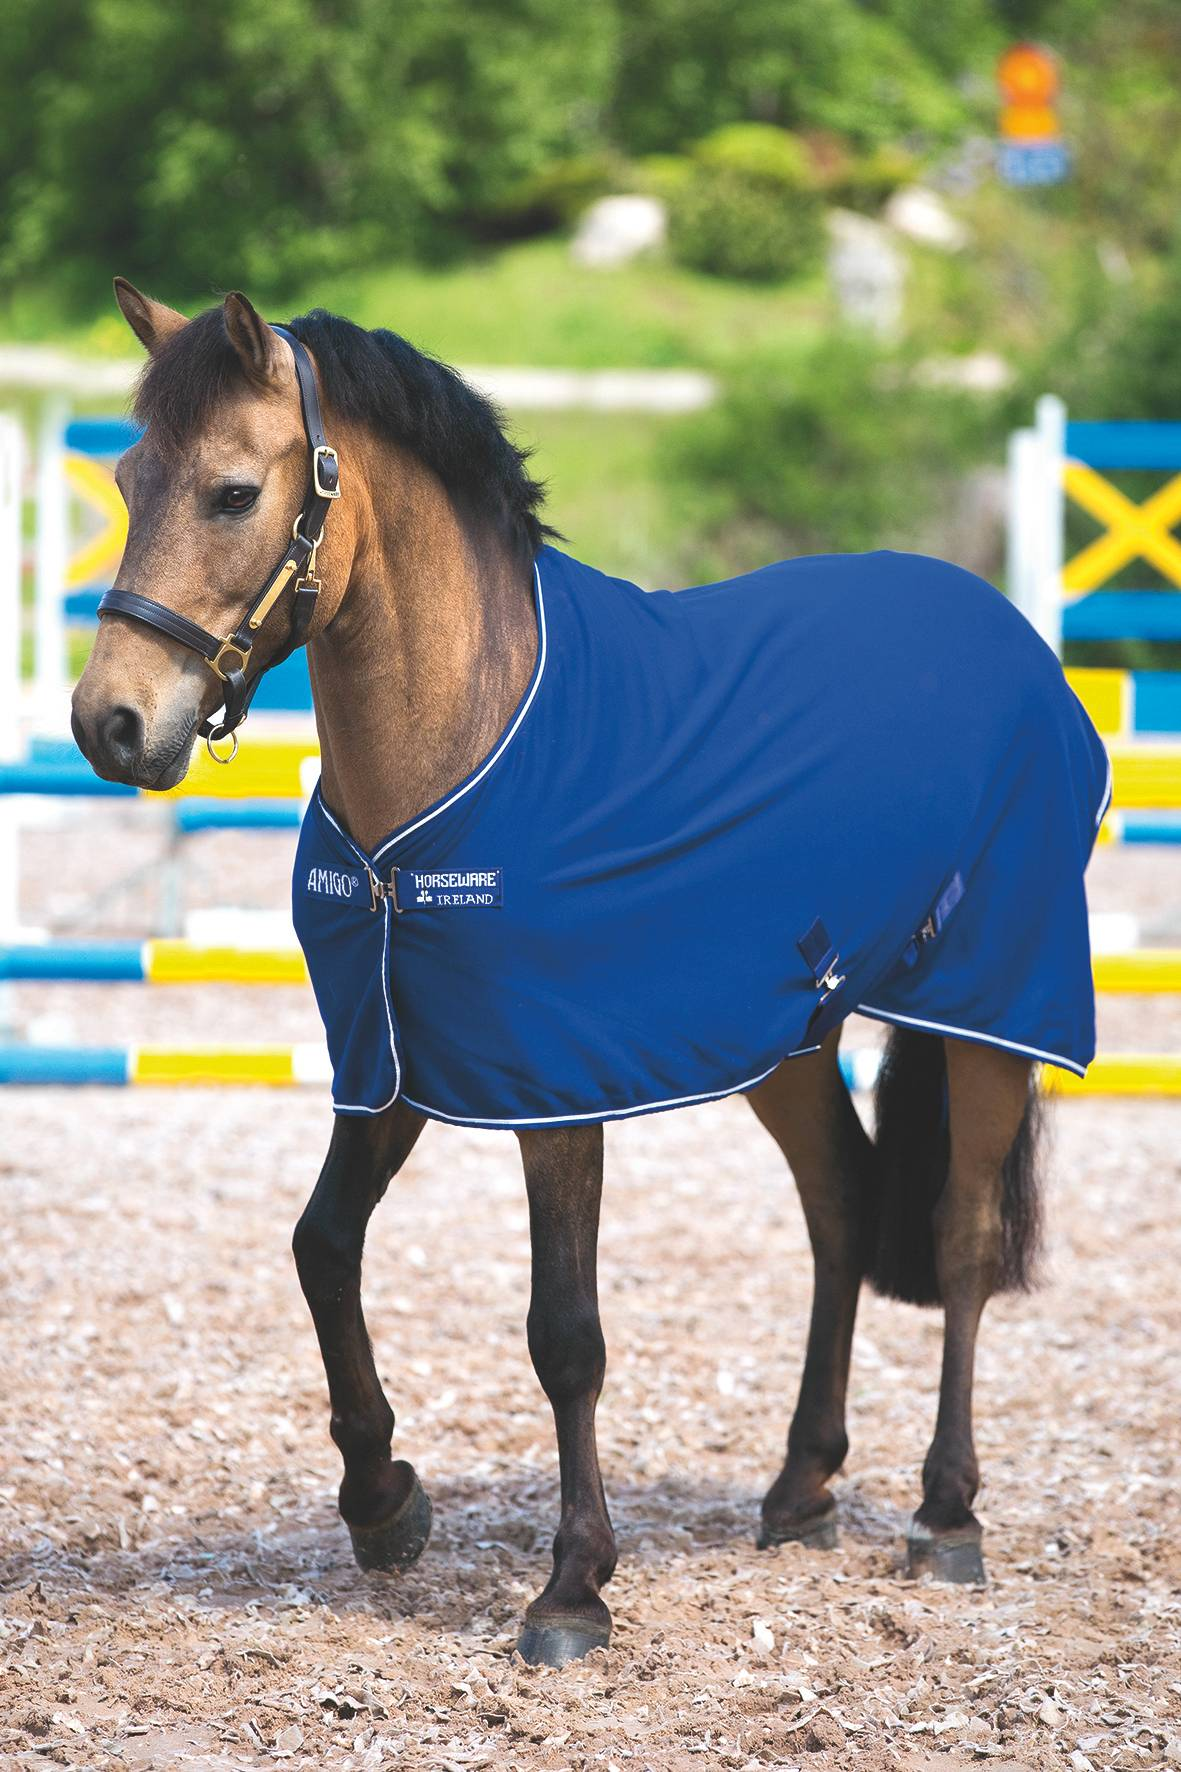 Amigo Jersey Pony Removable Surcingles